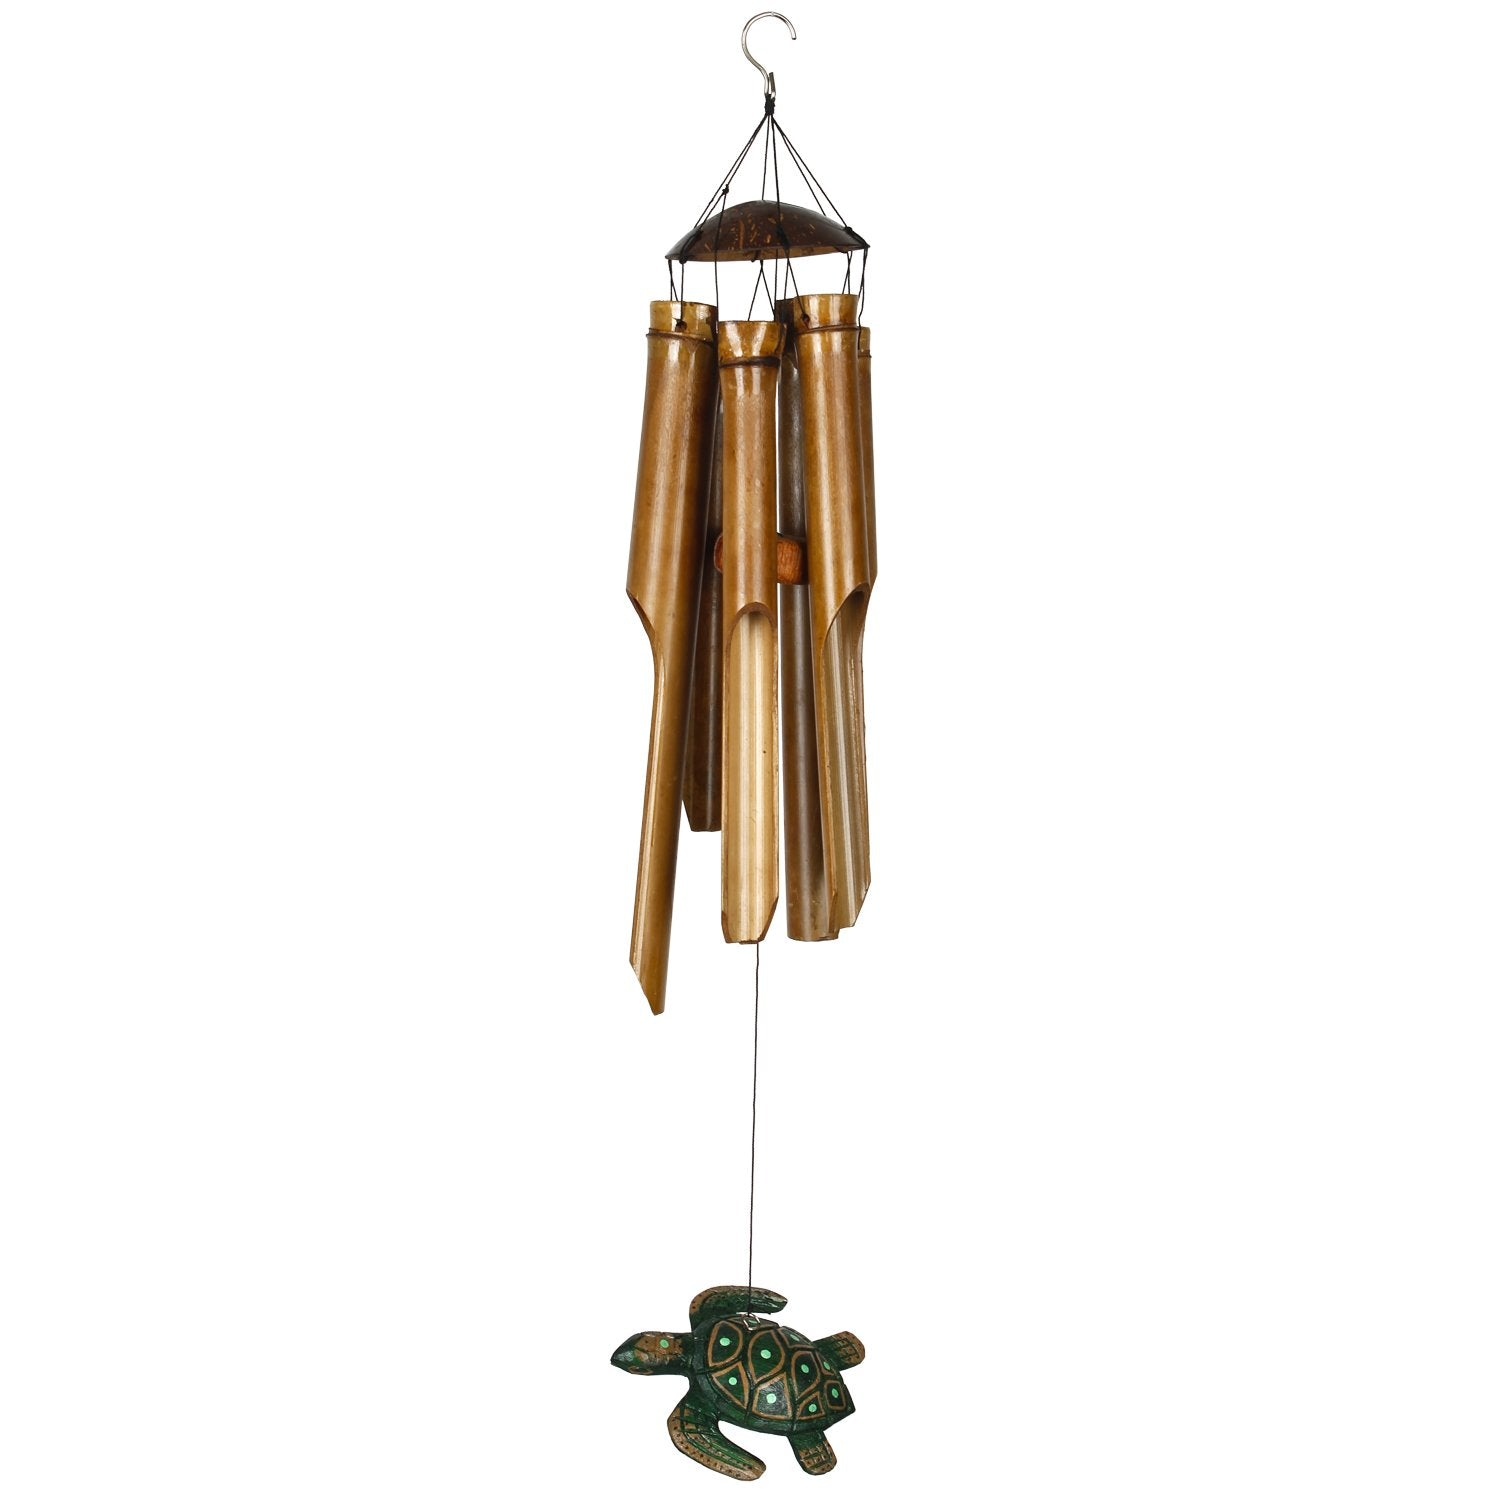 Half Coconut Bamboo Chime - Medium, Sea Turtle full product image